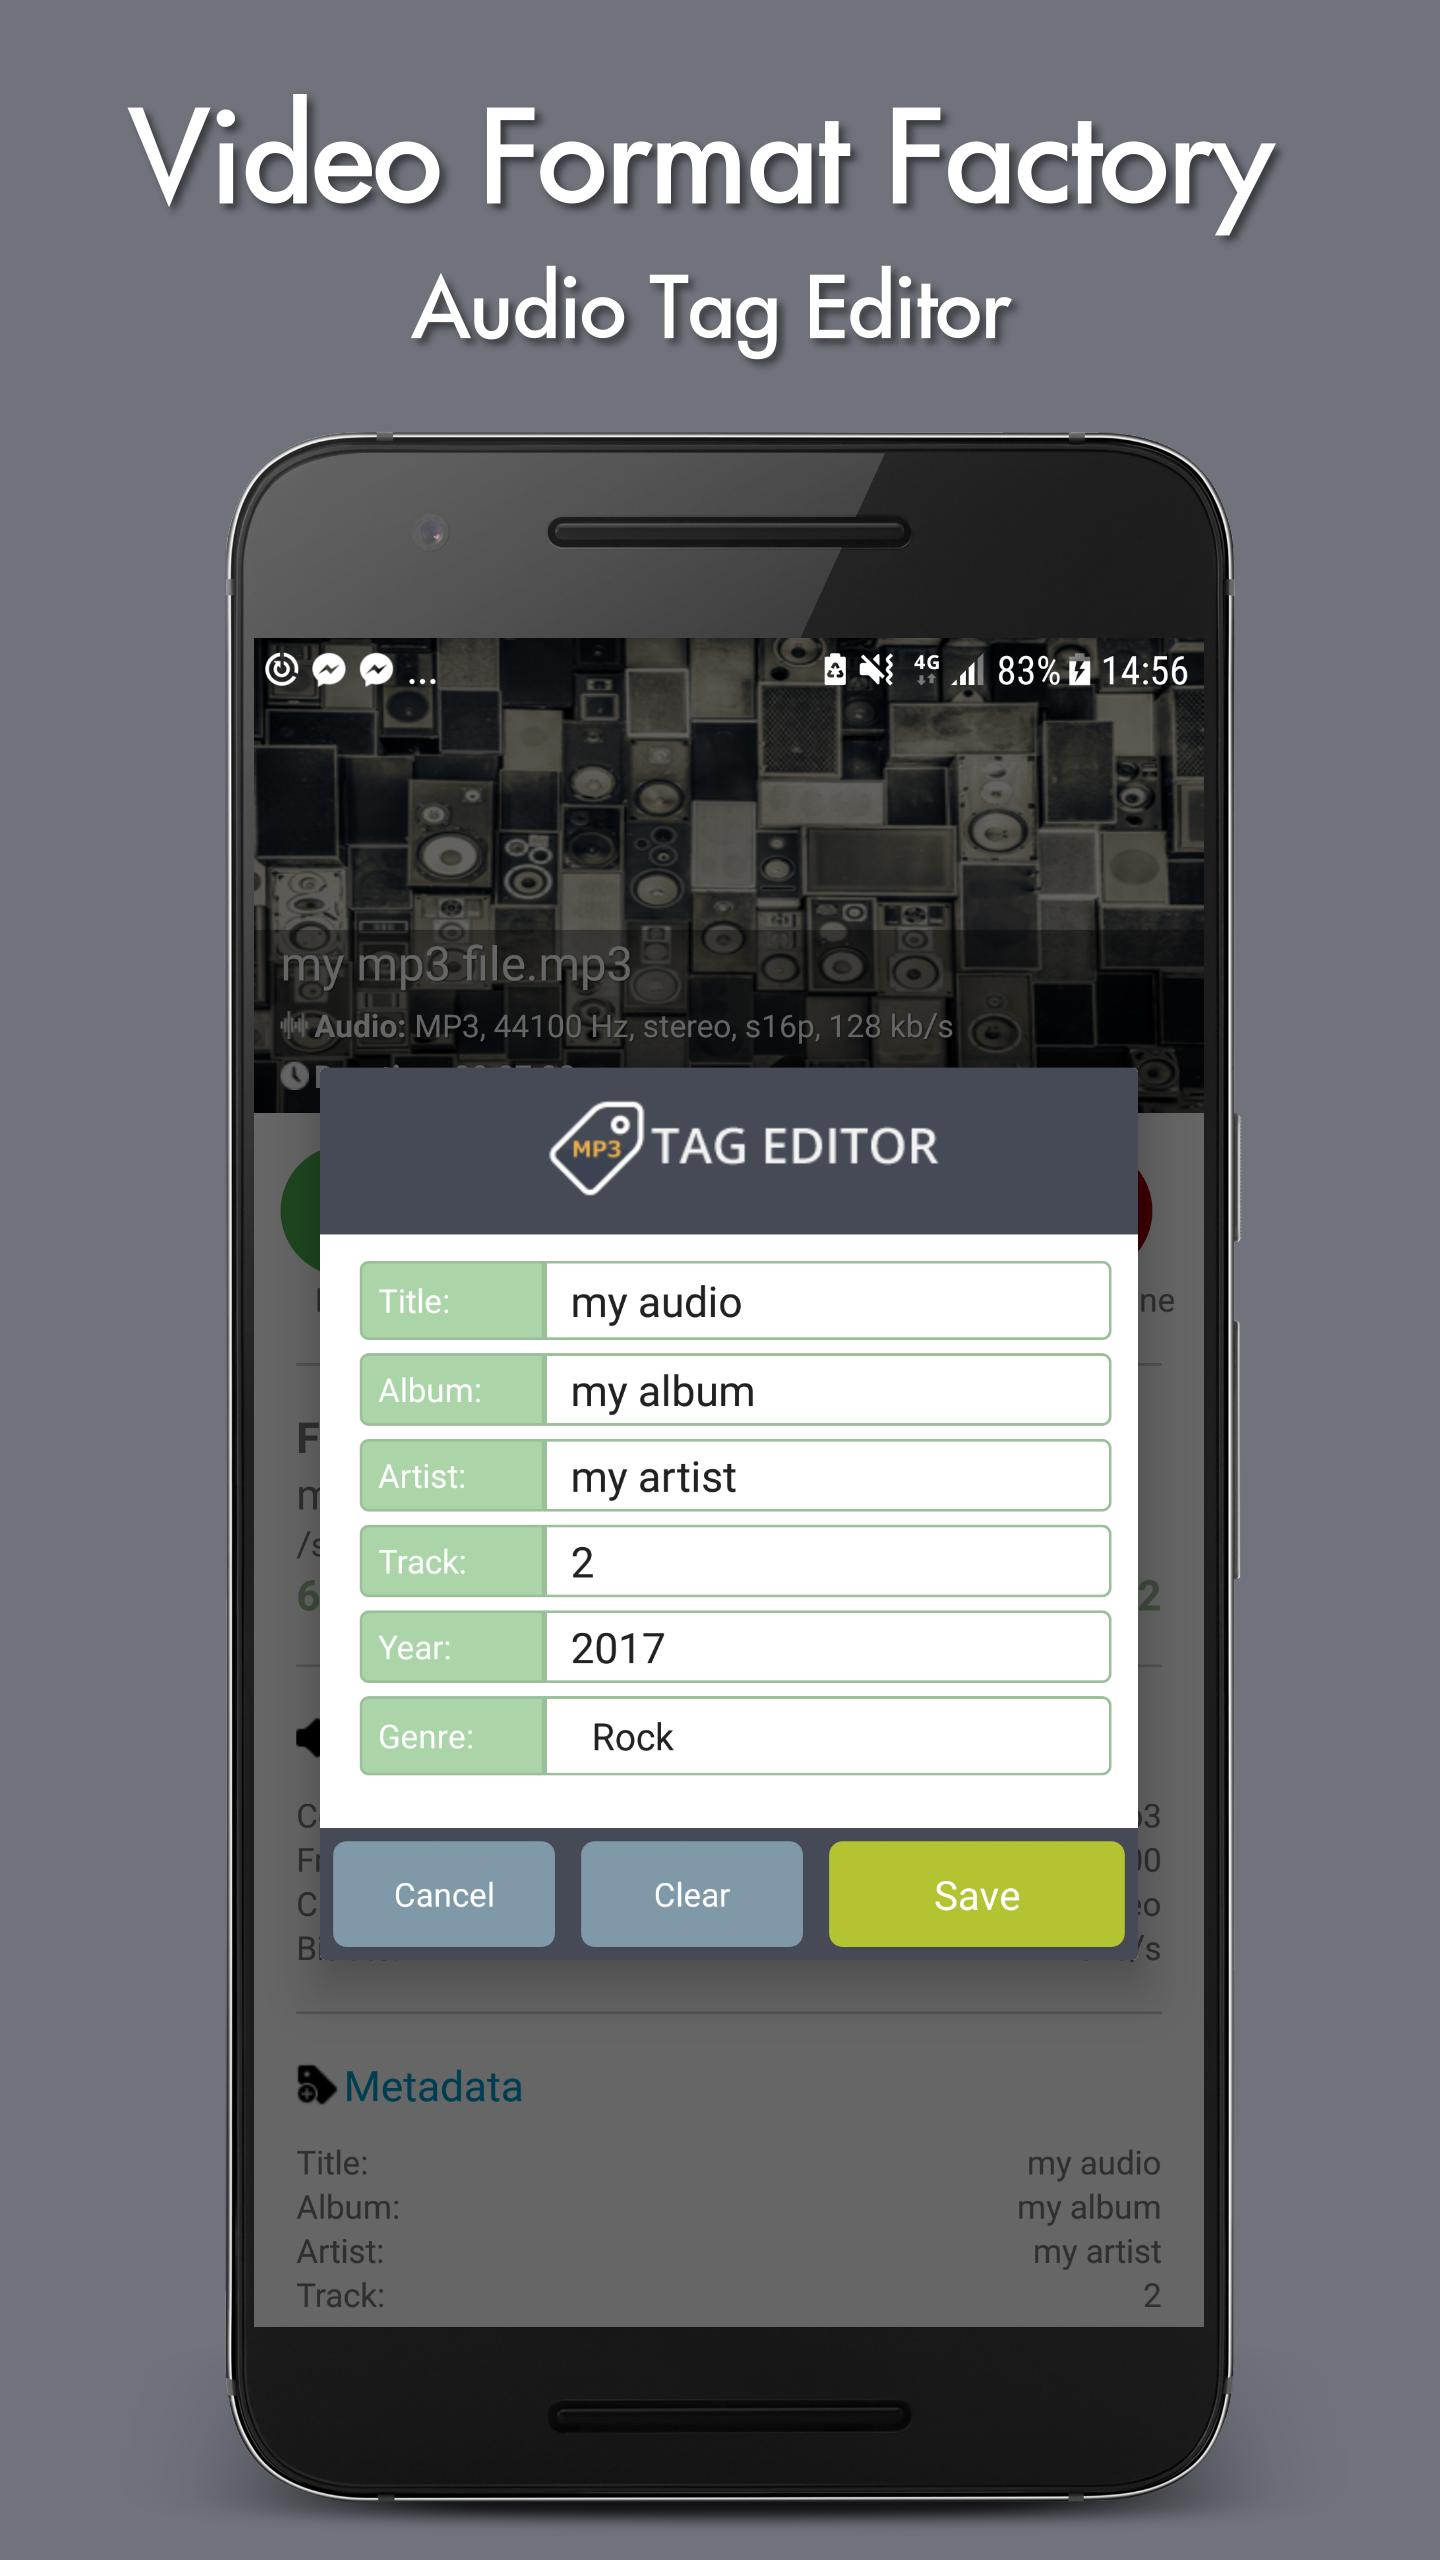 Video Format Factory for Android - APK Download